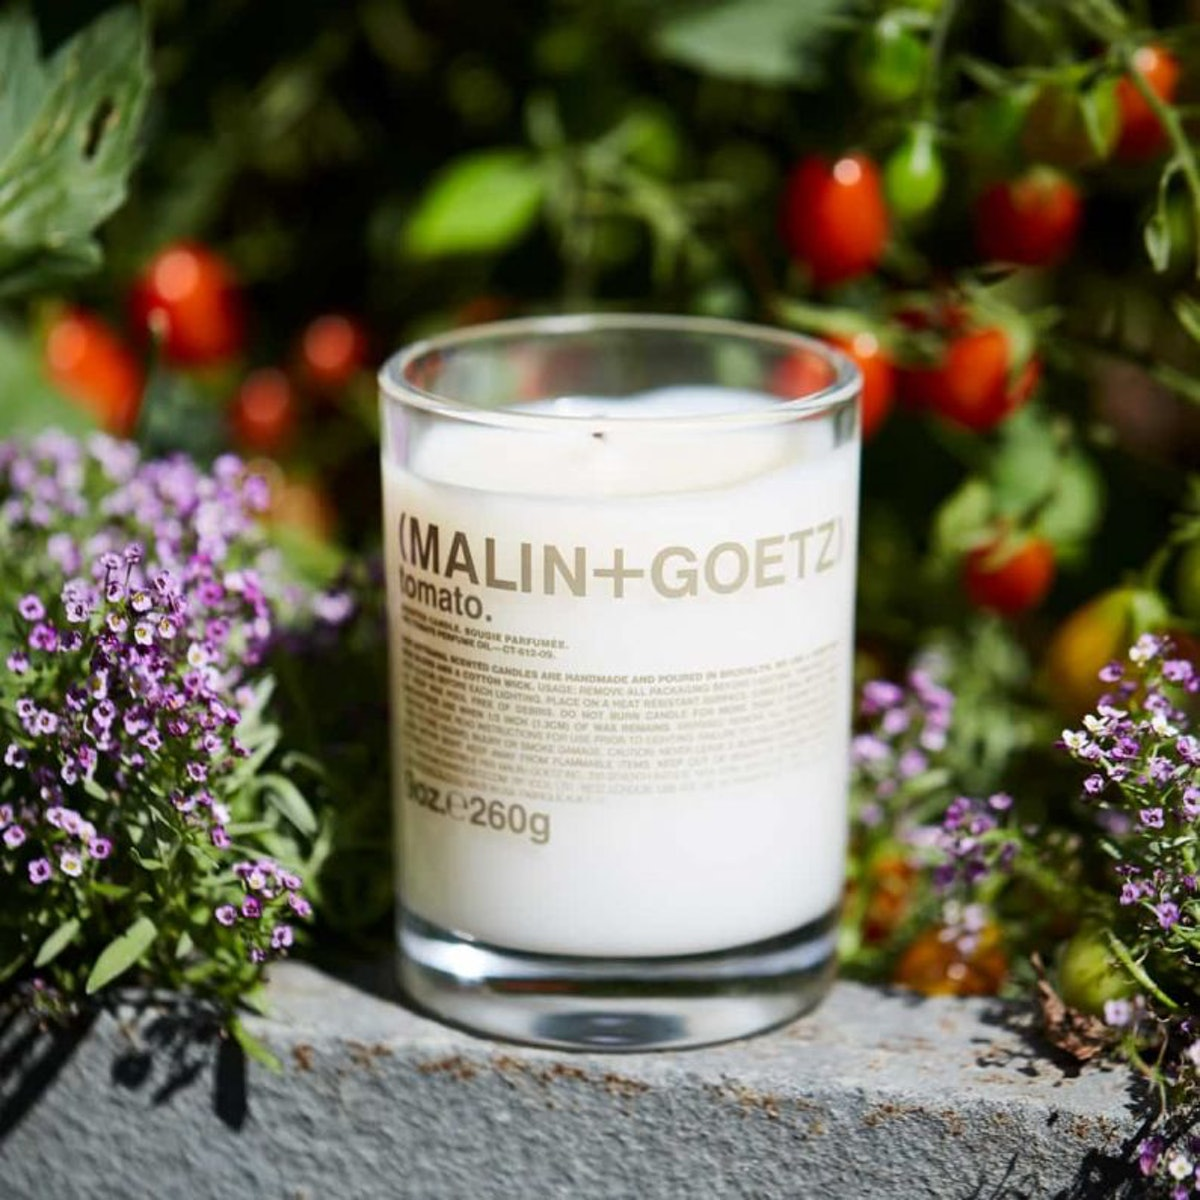 MALIN+GOETZ's Tomato Candle is an unexpected but welcome summer scent